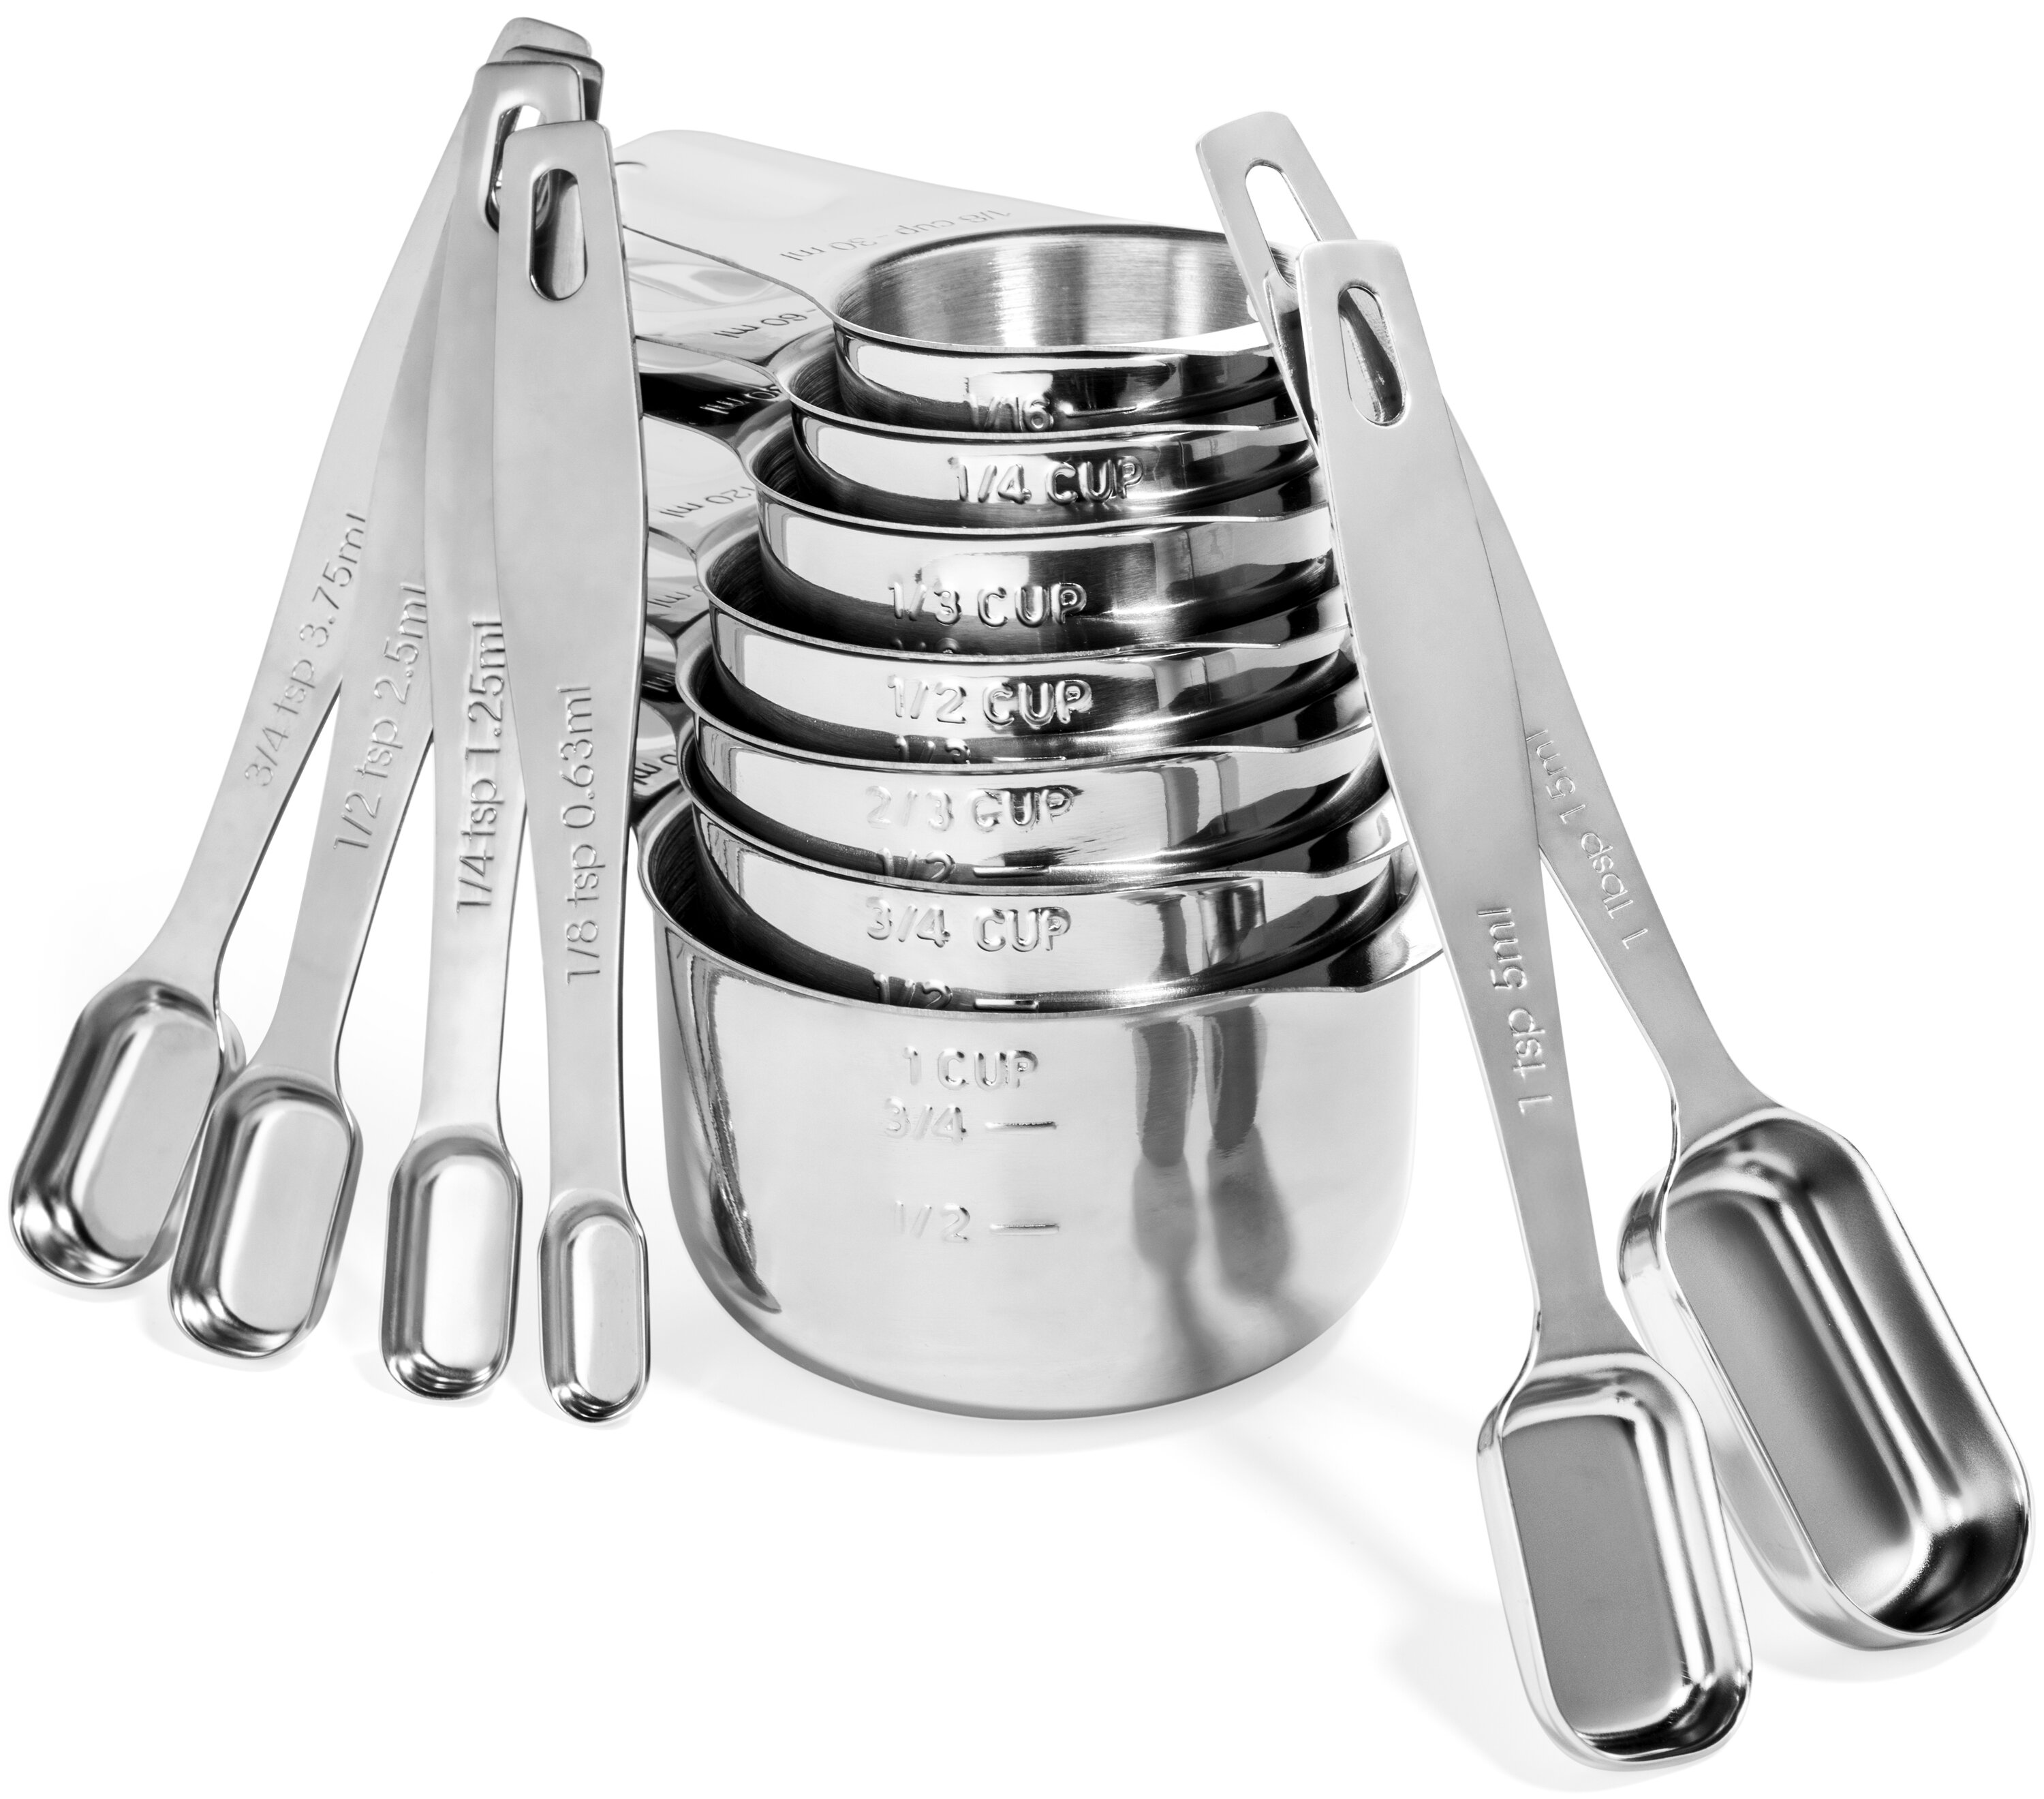 Stainless Steel Measuring Cups /& Spoons 10 Pieces Set 5 Cups /& 5 Spoons US